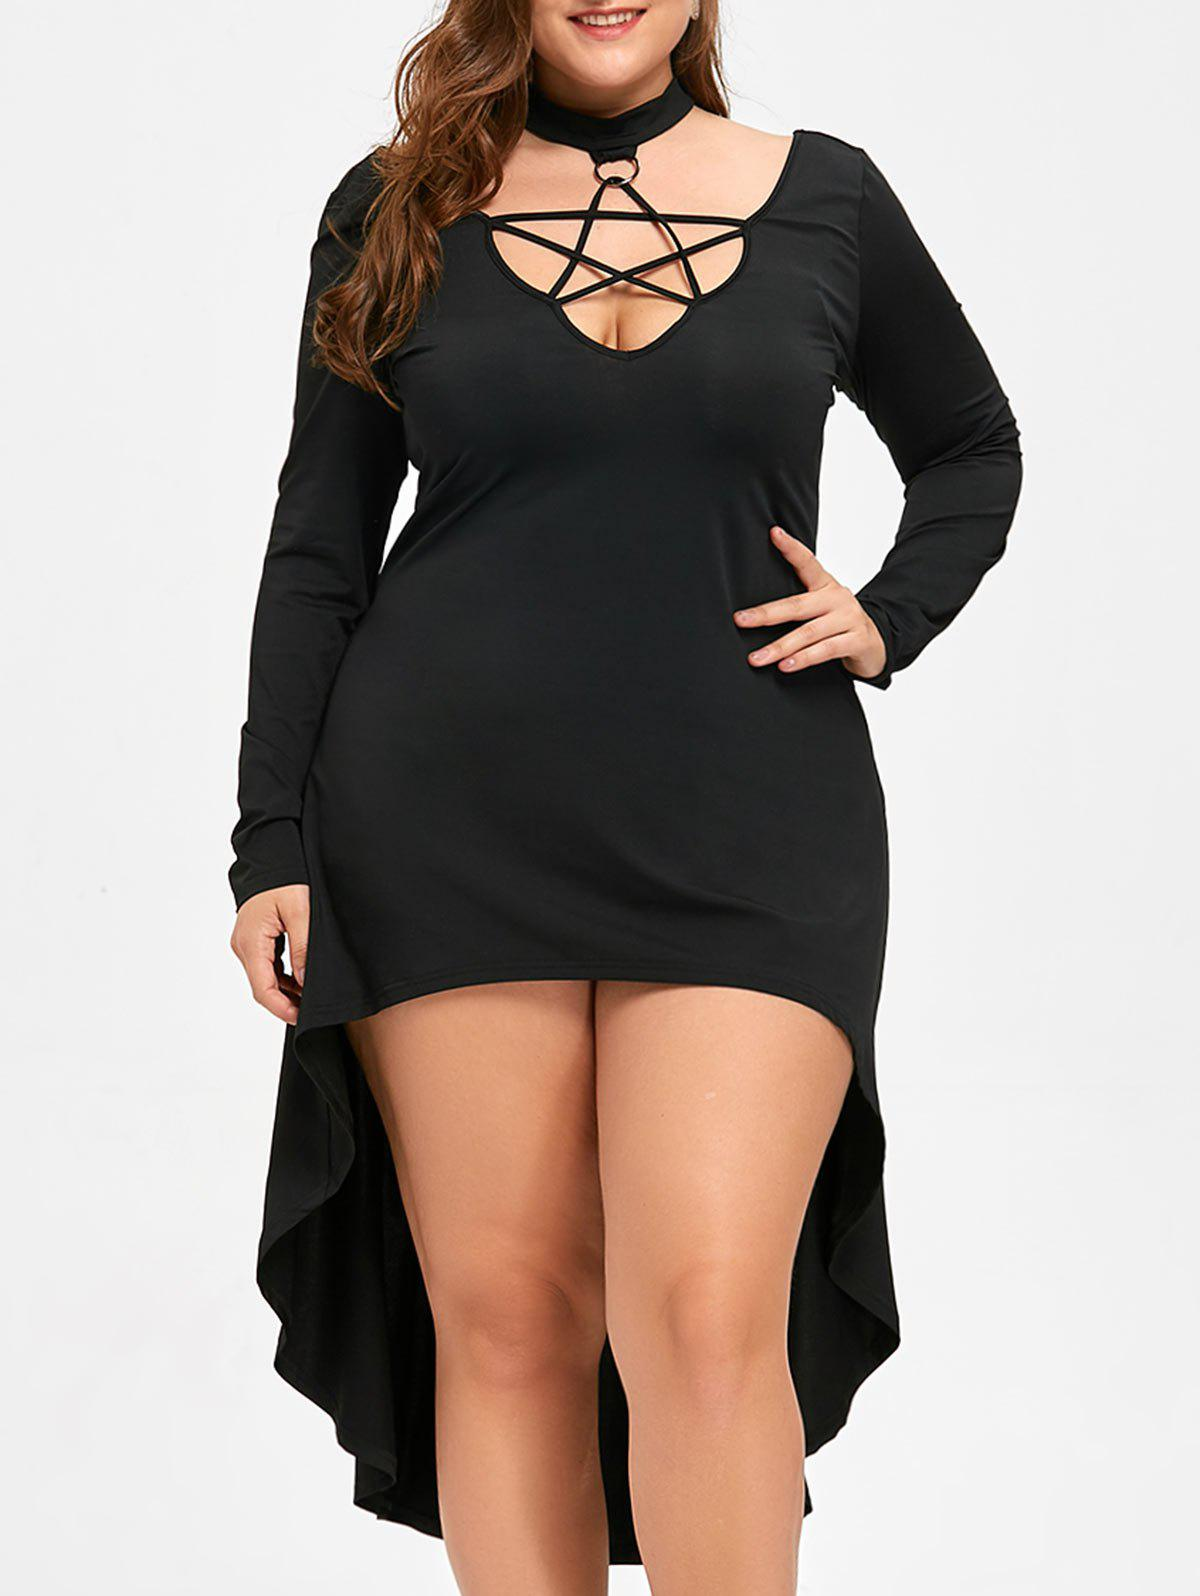 Halloween Plus Size Cutout Lace Up Hot Cocktail DressWOMEN<br><br>Size: 5XL; Color: BLACK; Style: Club; Material: Polyester,Spandex; Silhouette: A-Line; Dresses Length: Mid-Calf; Neckline: Mock Neck; Sleeve Length: Long Sleeves; Pattern Type: Solid Color; With Belt: No; Season: Fall,Spring; Weight: 0.3700kg; Package Contents: 1 x Dress;